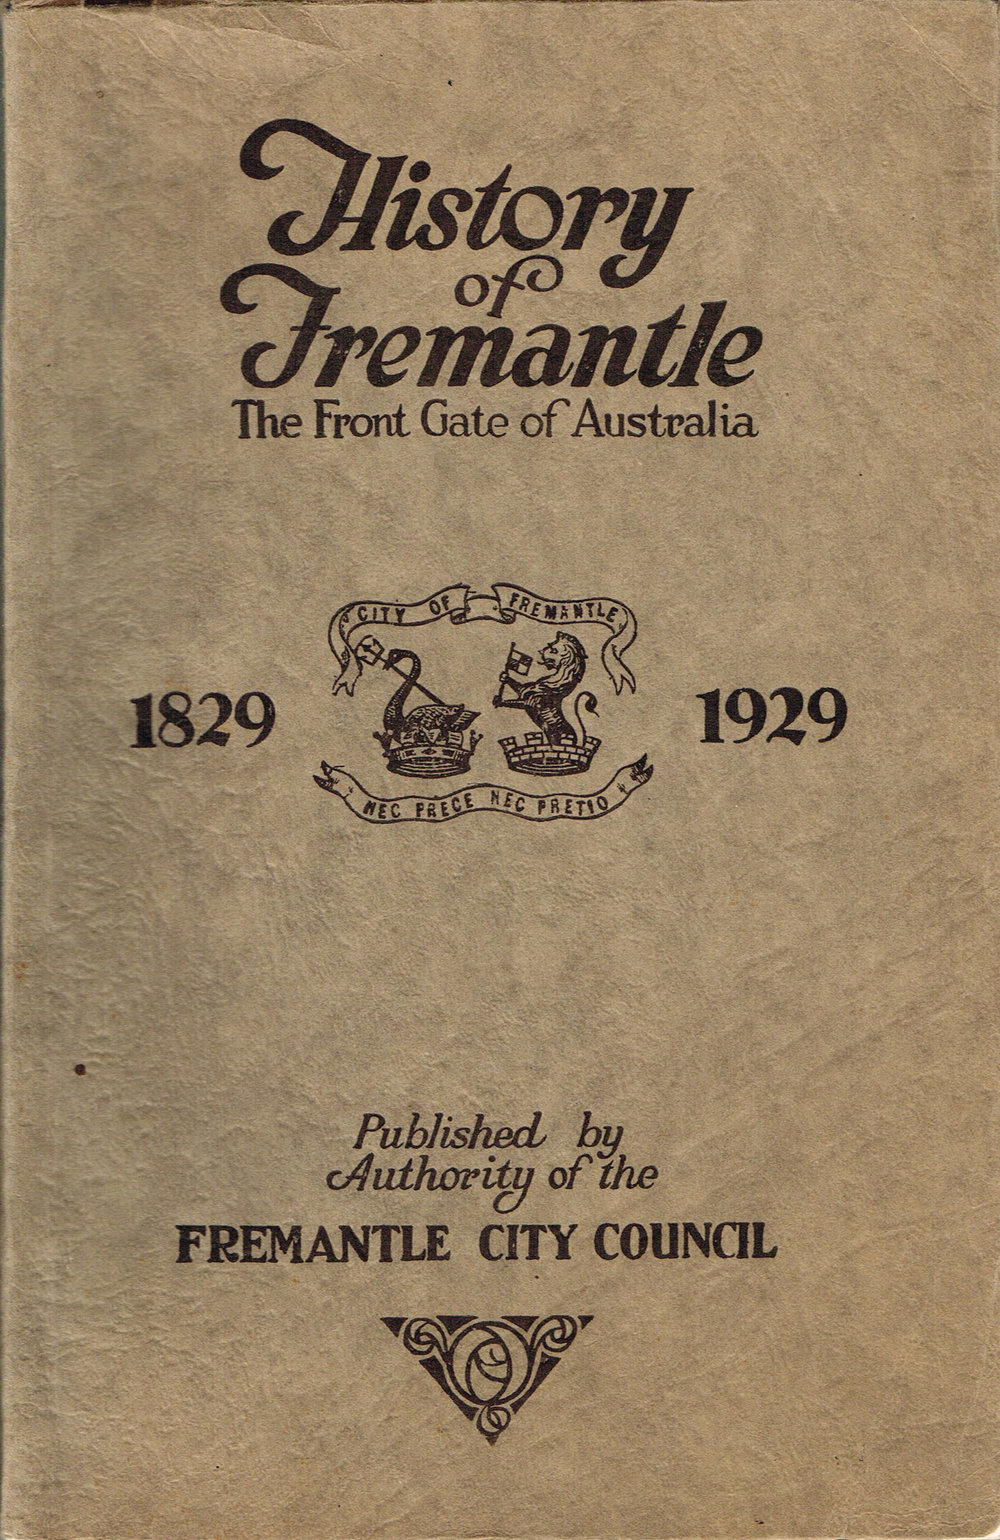 History_of_Fremantle.jpg